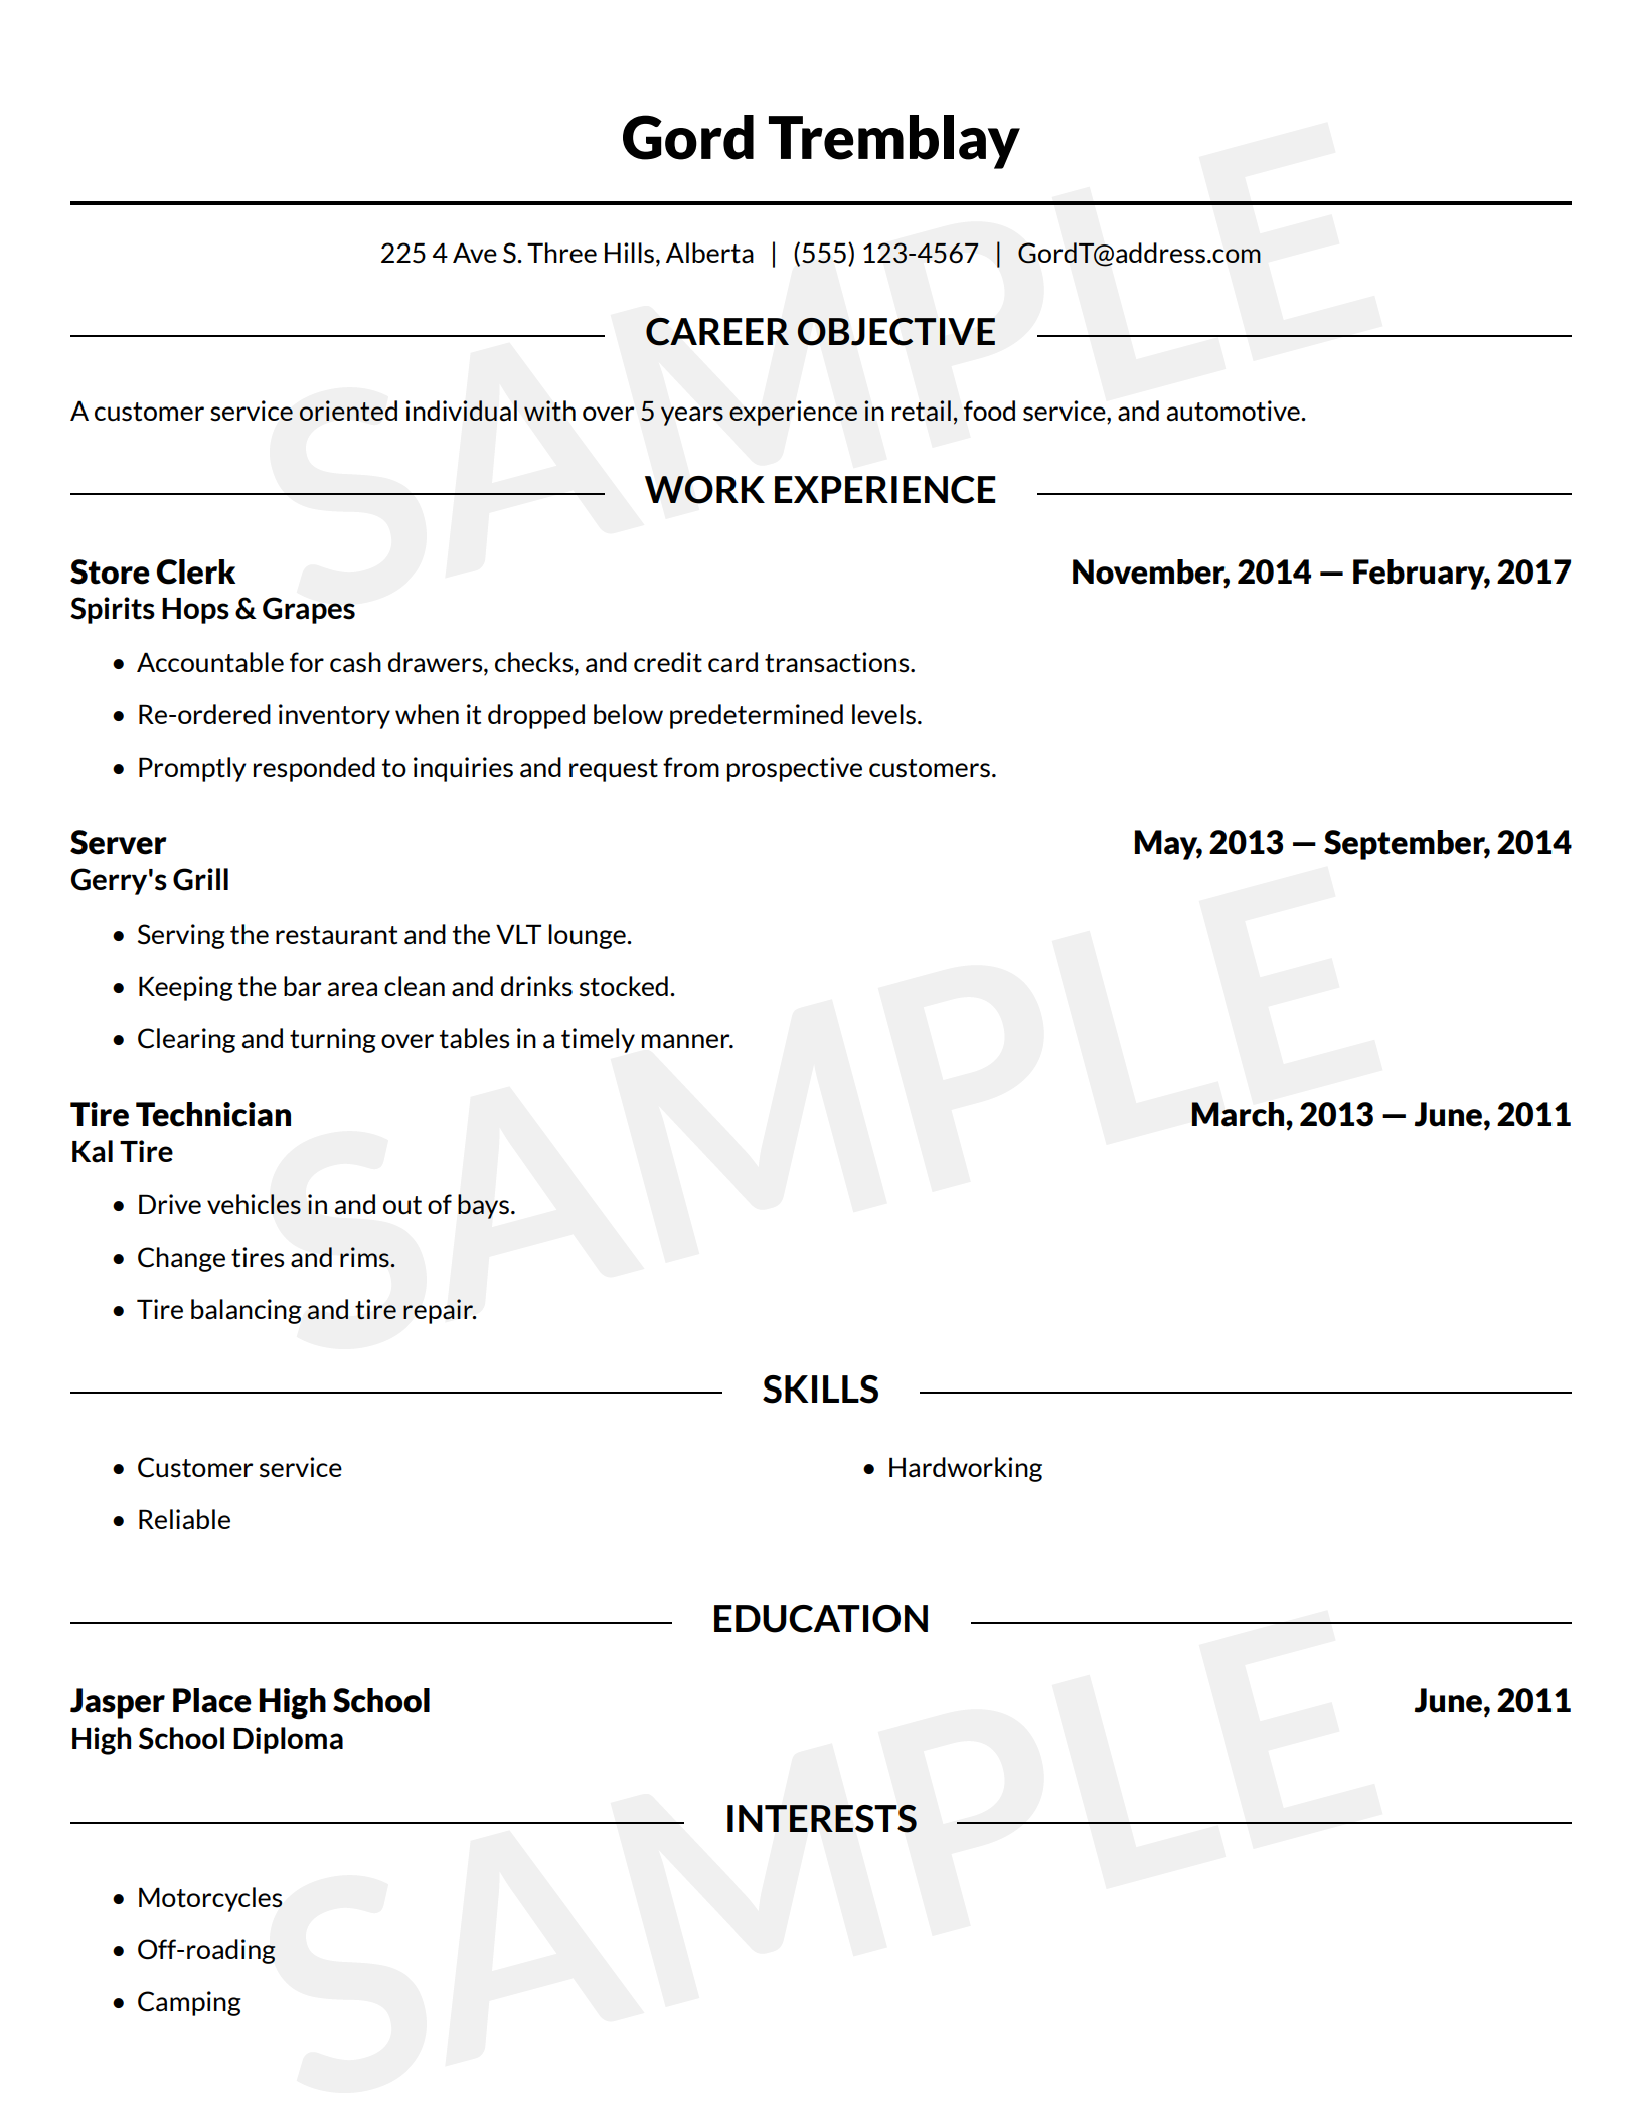 Resume Awesome Resume Builder Free Online Resume Template Canada LawDepot